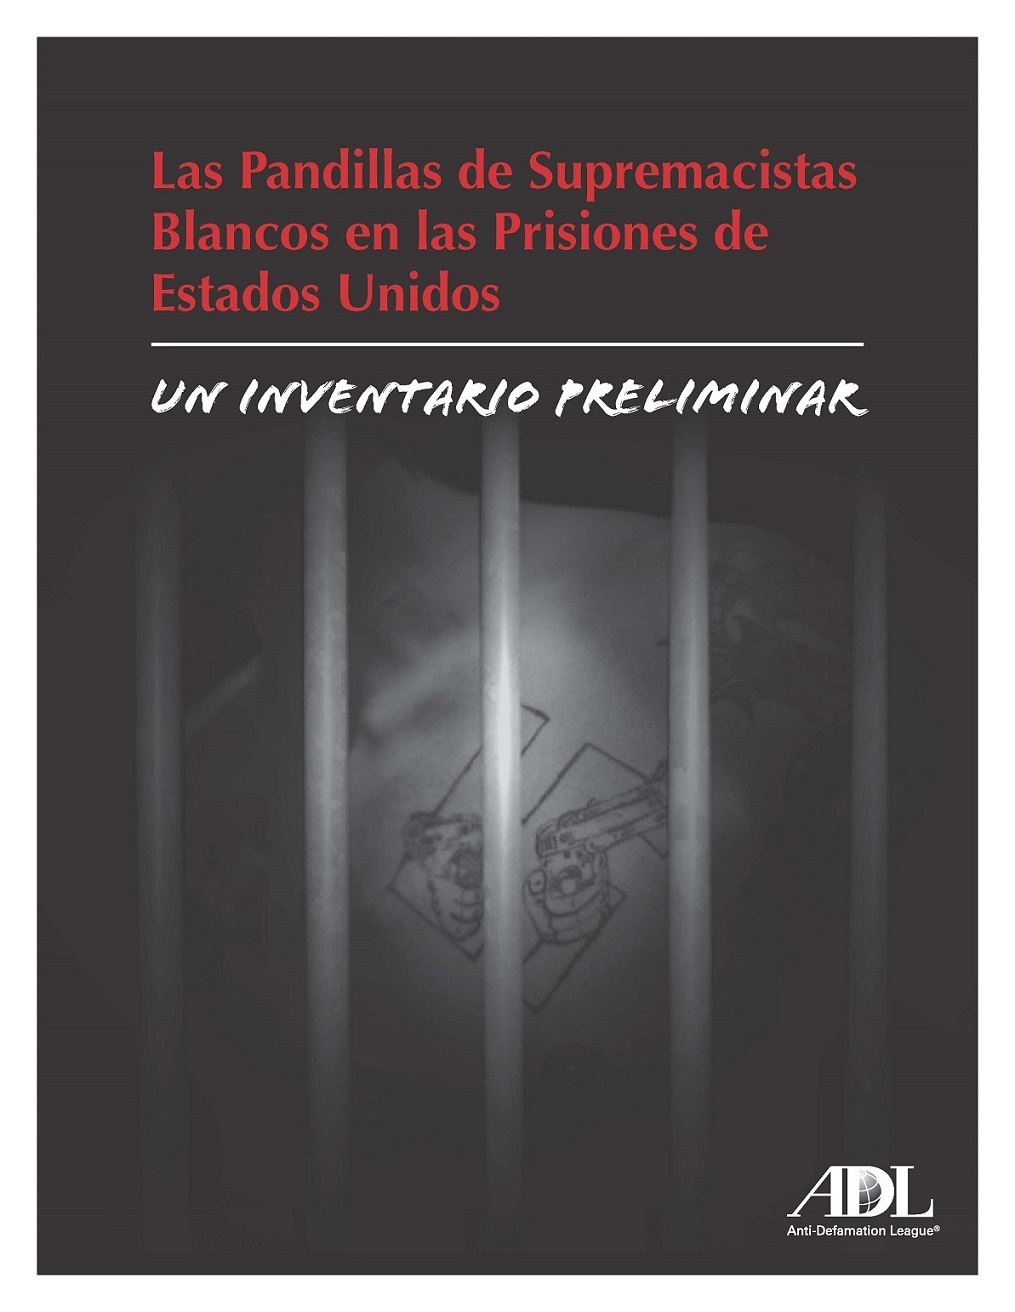 White Supremacist Prison Gang Report - Spanish Version